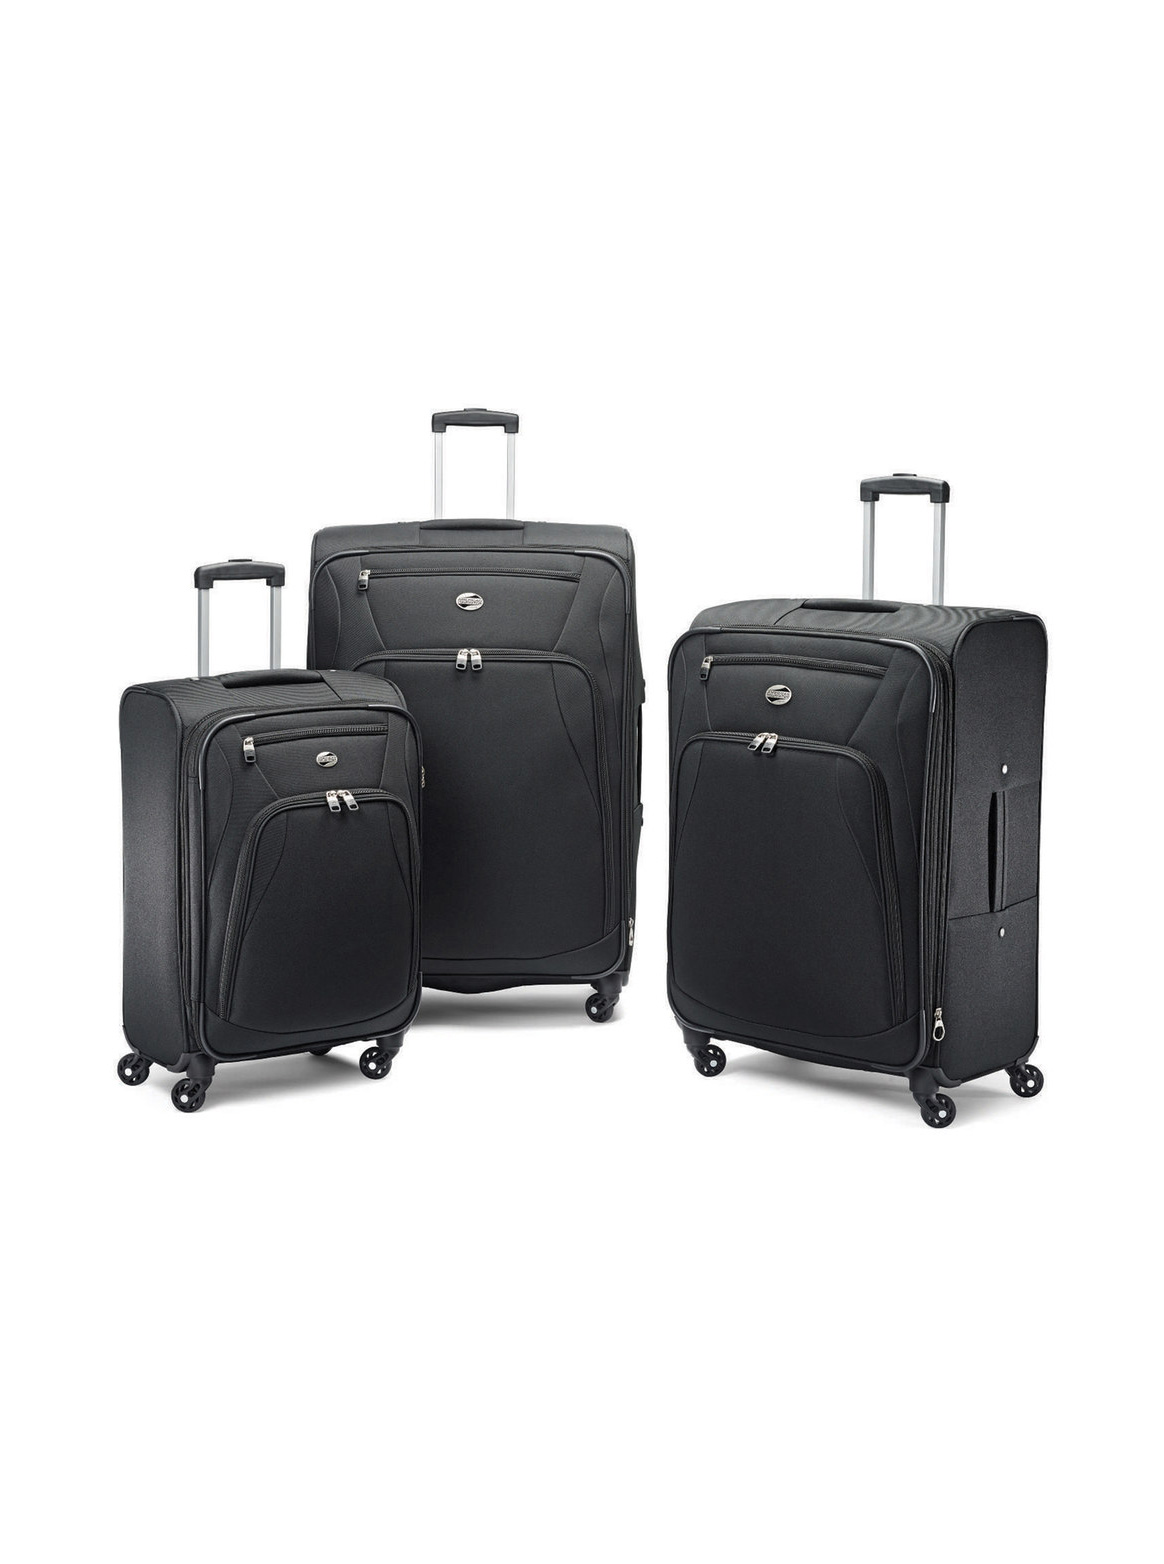 Kohl S Black Friday Luggage Deal Is Seriously Unbelievable